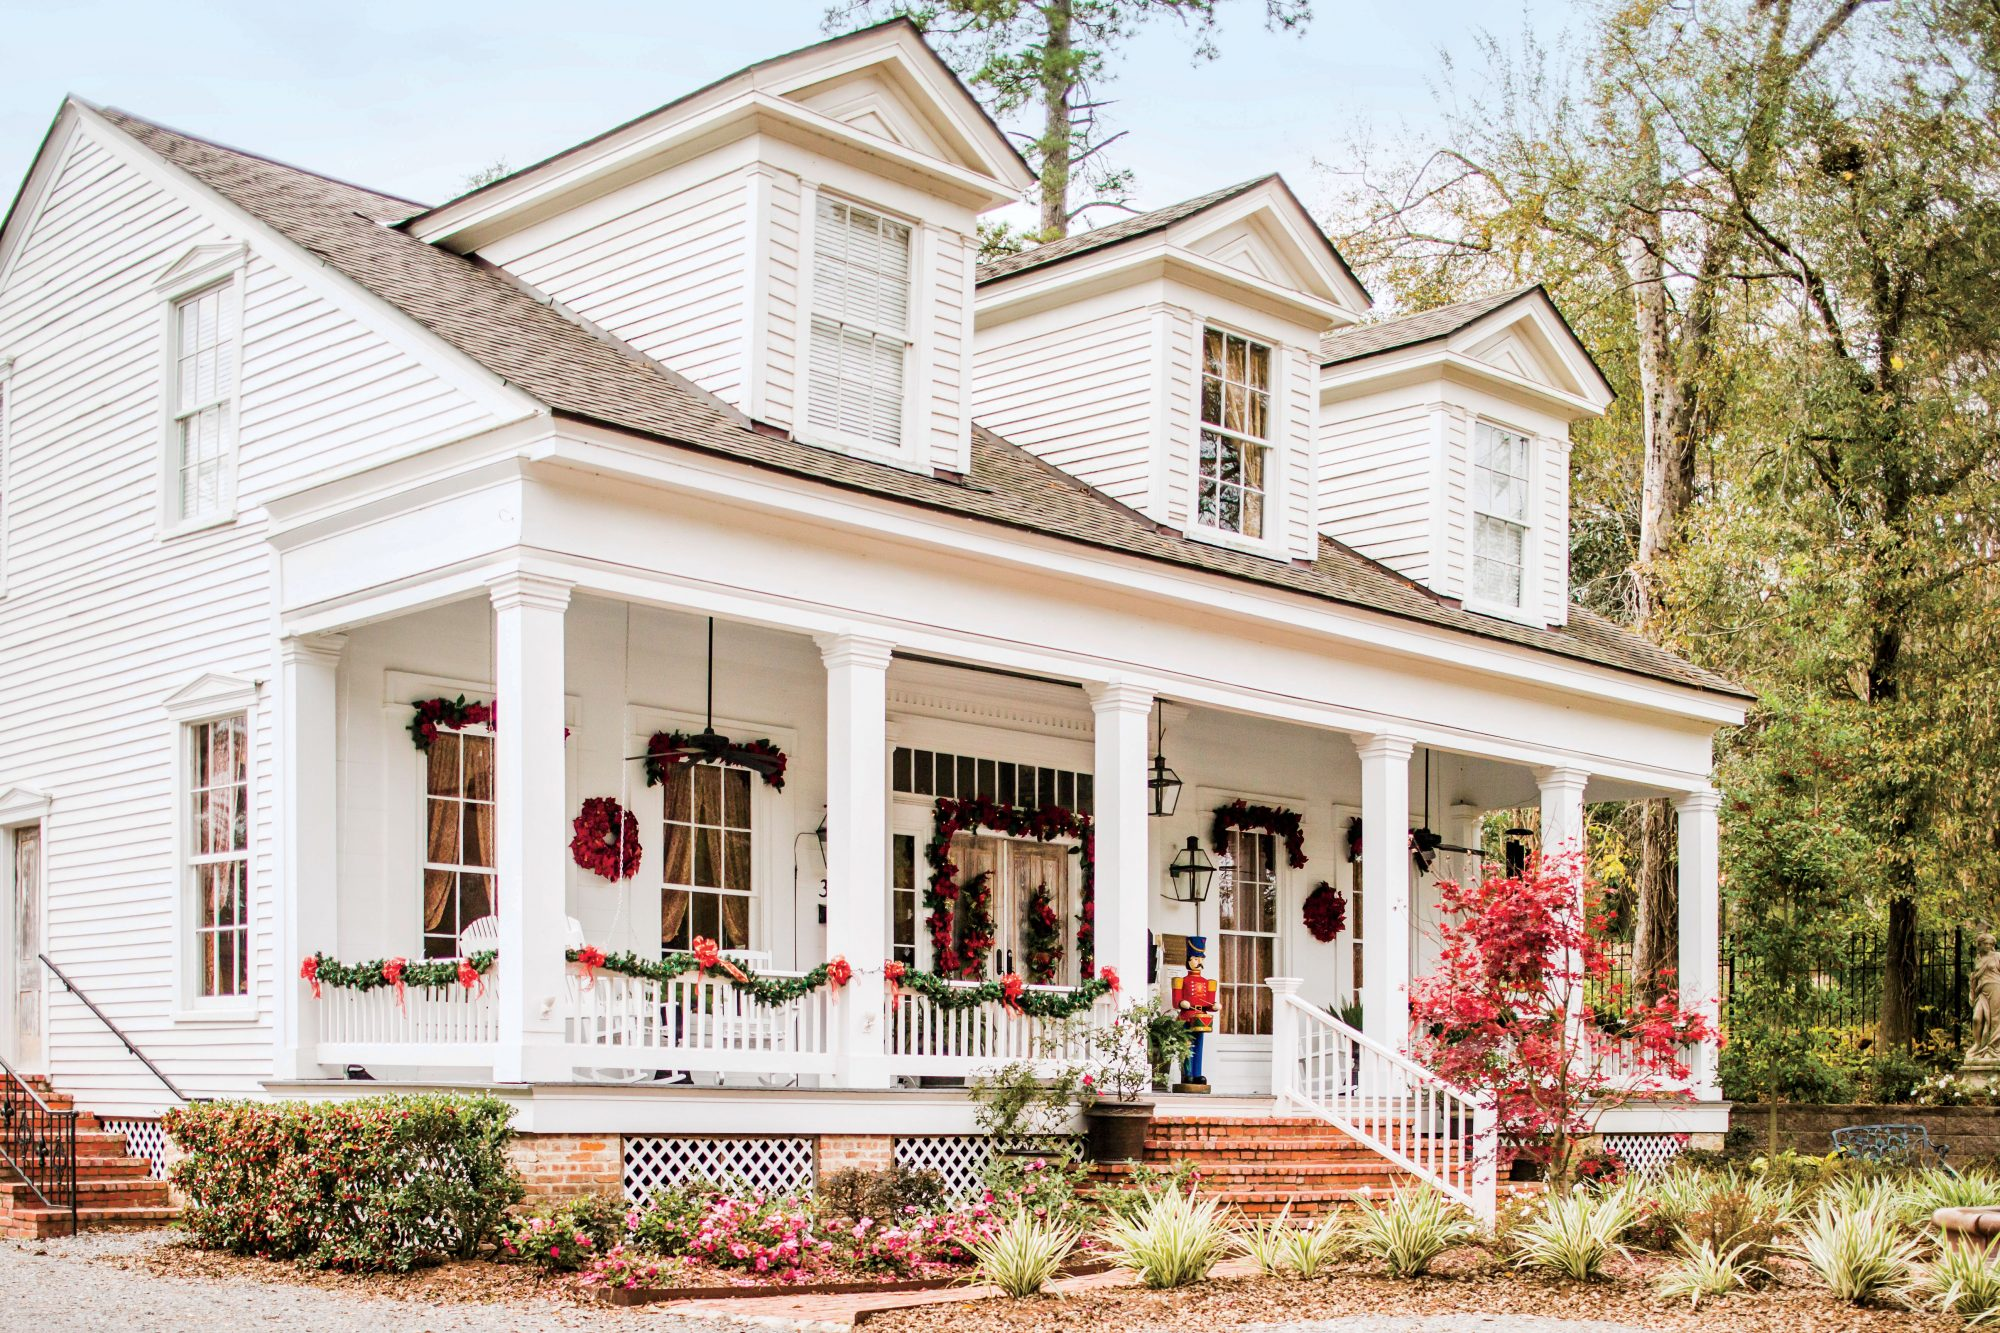 Samuel Guy Bed & Breakfast in Natchitoches, LA